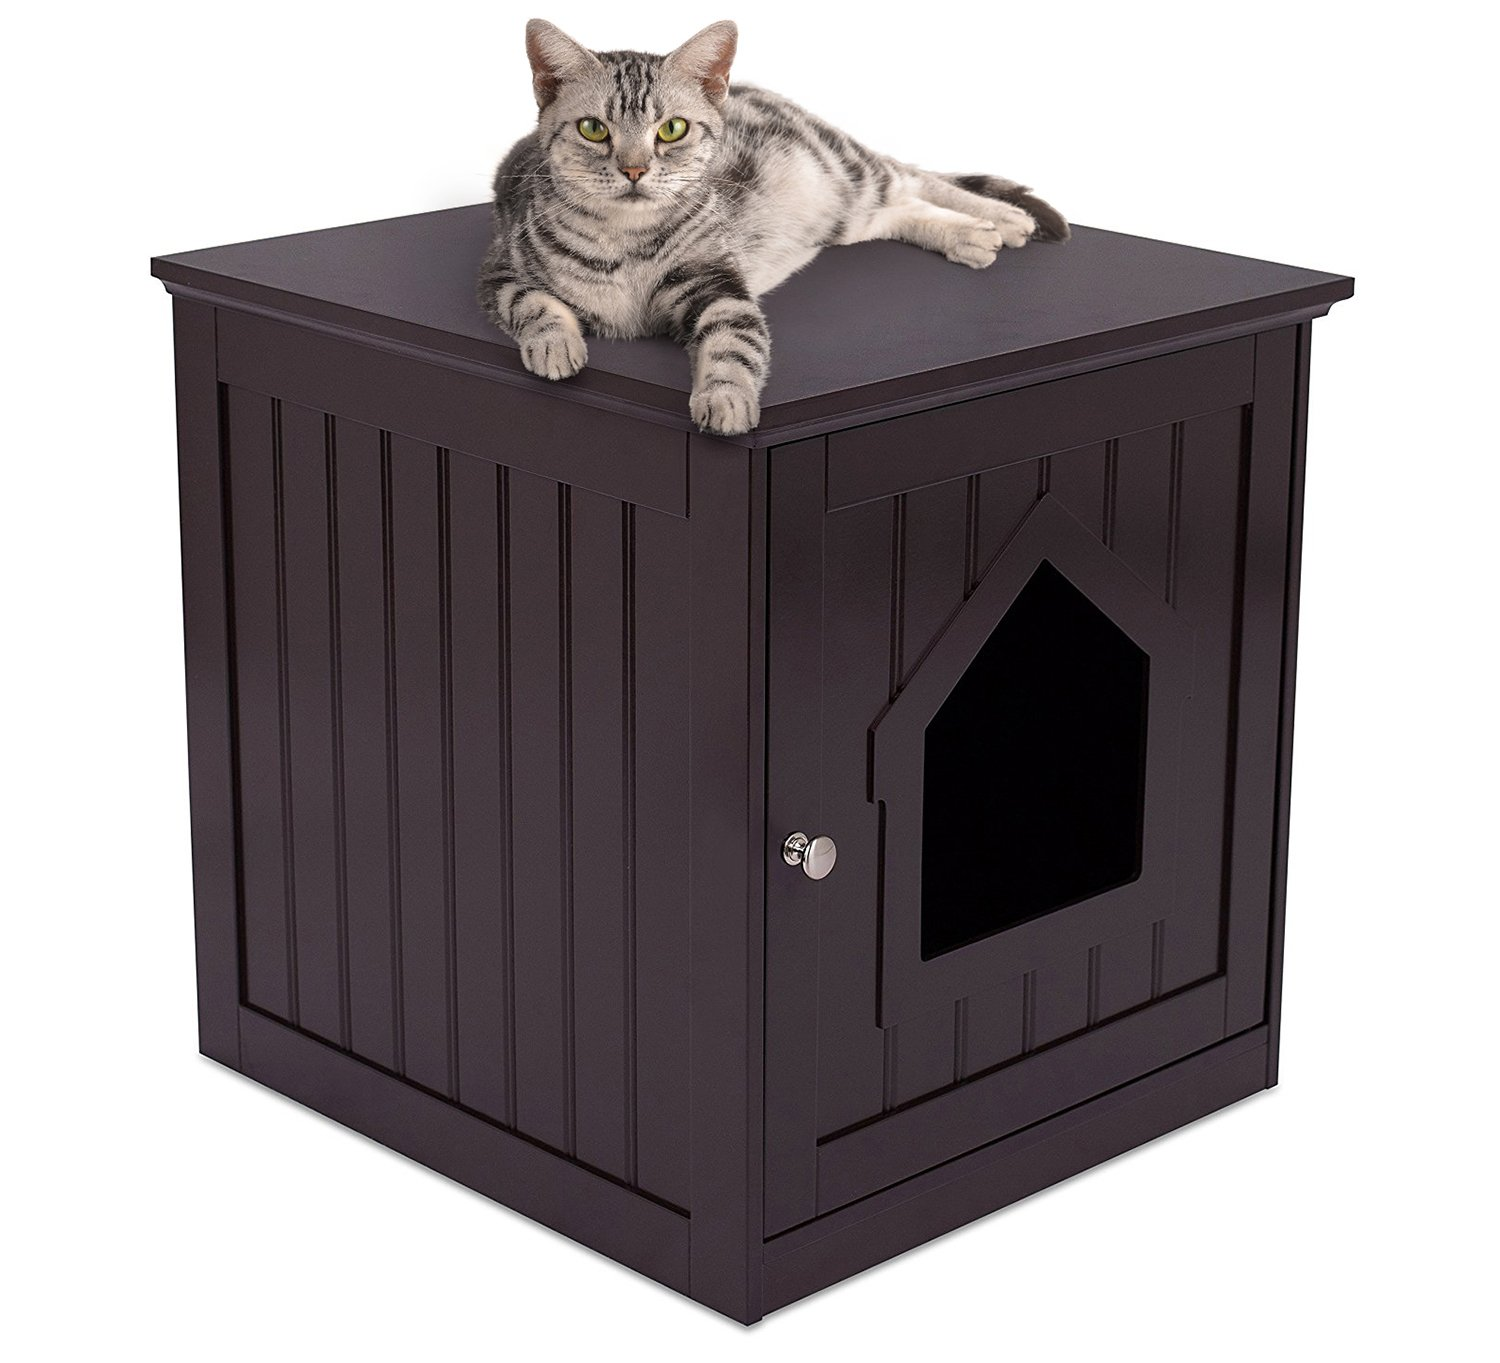 Internet's Best Decorative Cat House & Side Table | Cat Home Nightstand | Indoor Pet Crate | Litter Box Enclosure